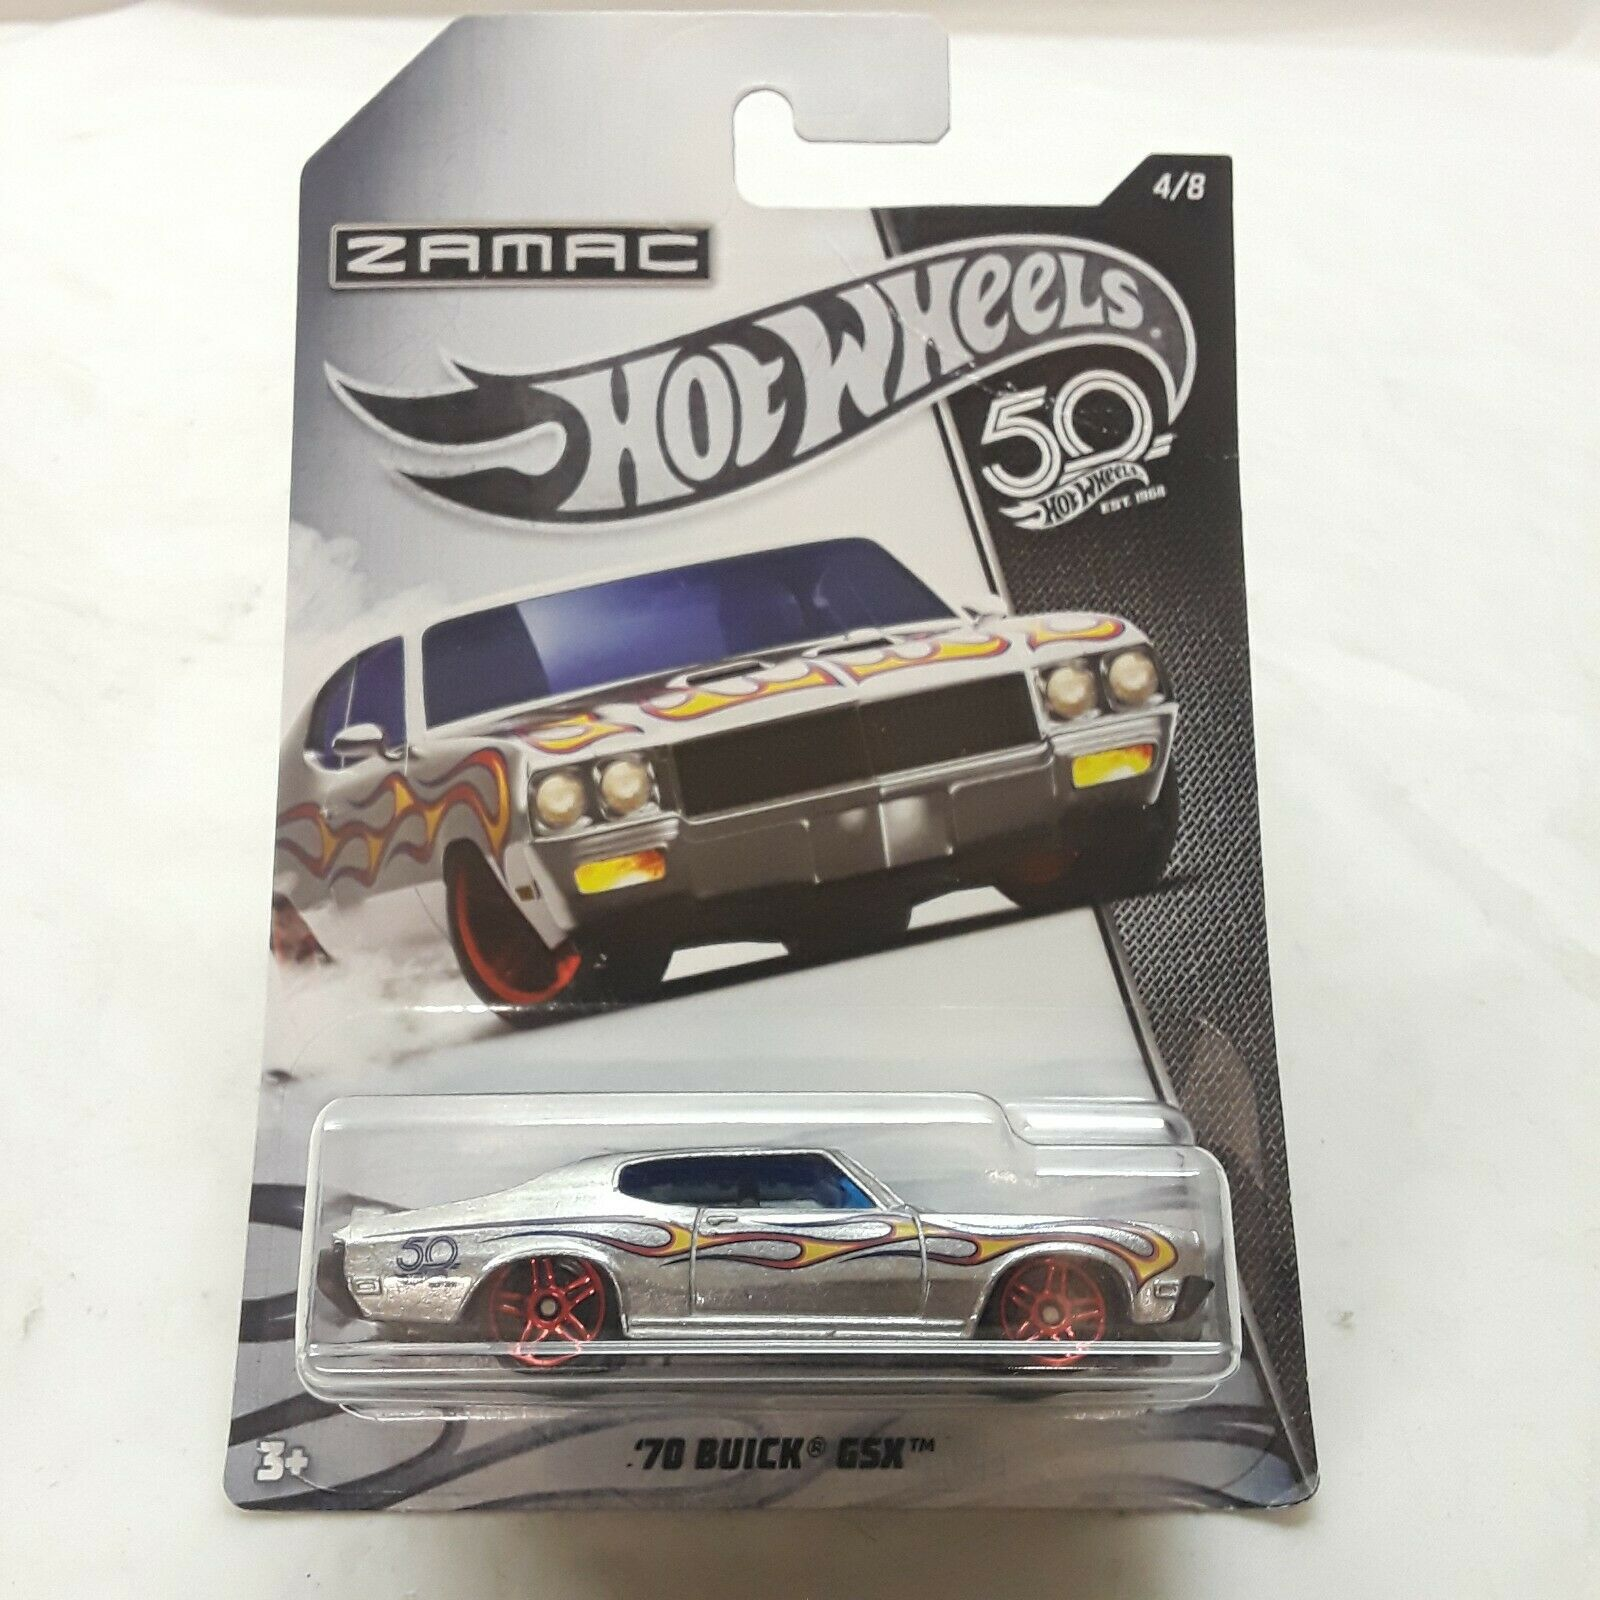 2018 ZAMAC 50th Anniversary Hot Wheels The Limits Since 1968 Complete Set of 8 for sale online